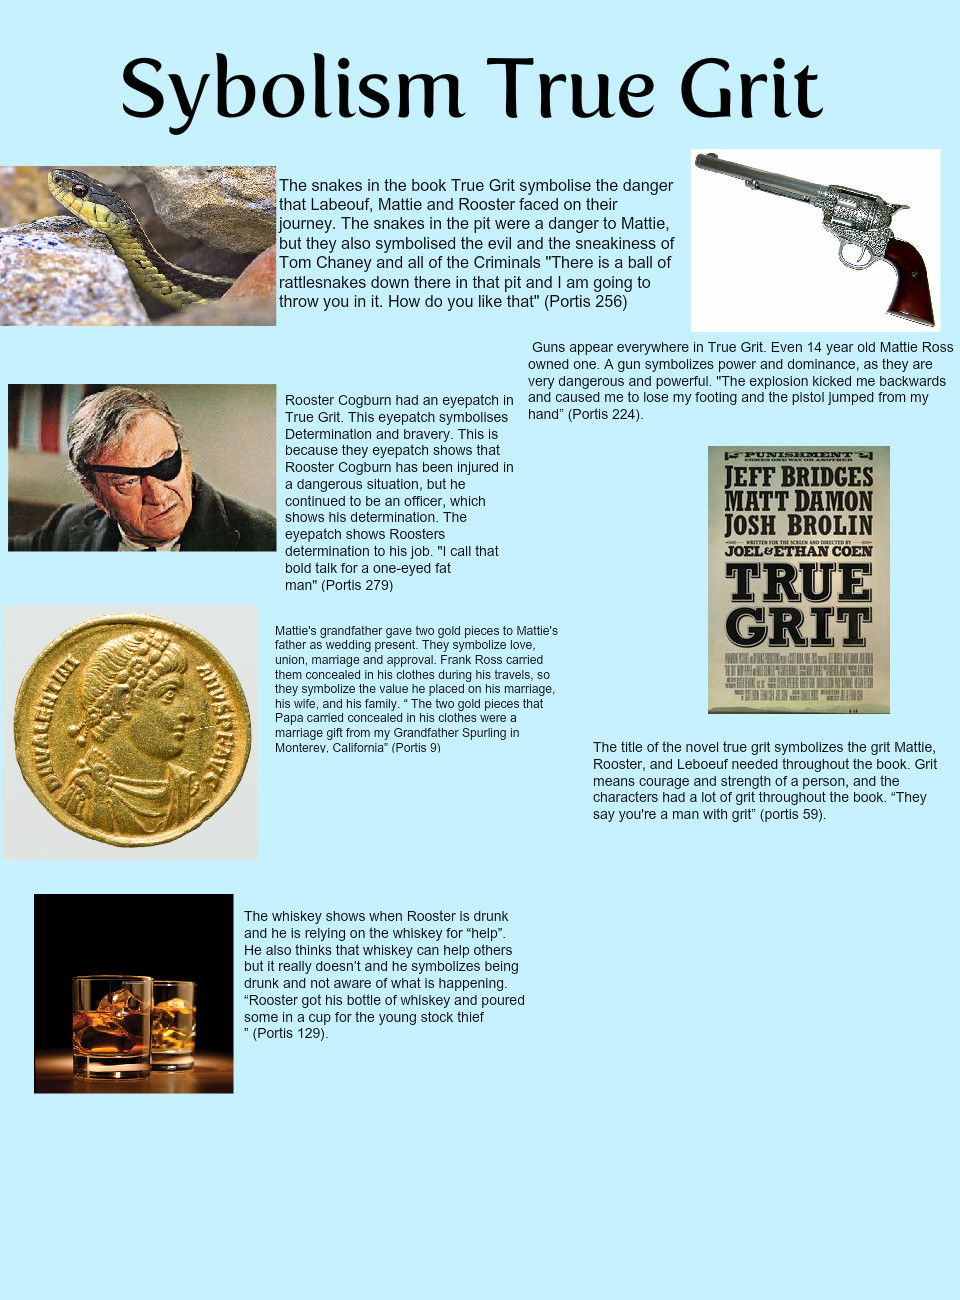 True grit symbolism text images music video glogster edu true grit symbolism biocorpaavc